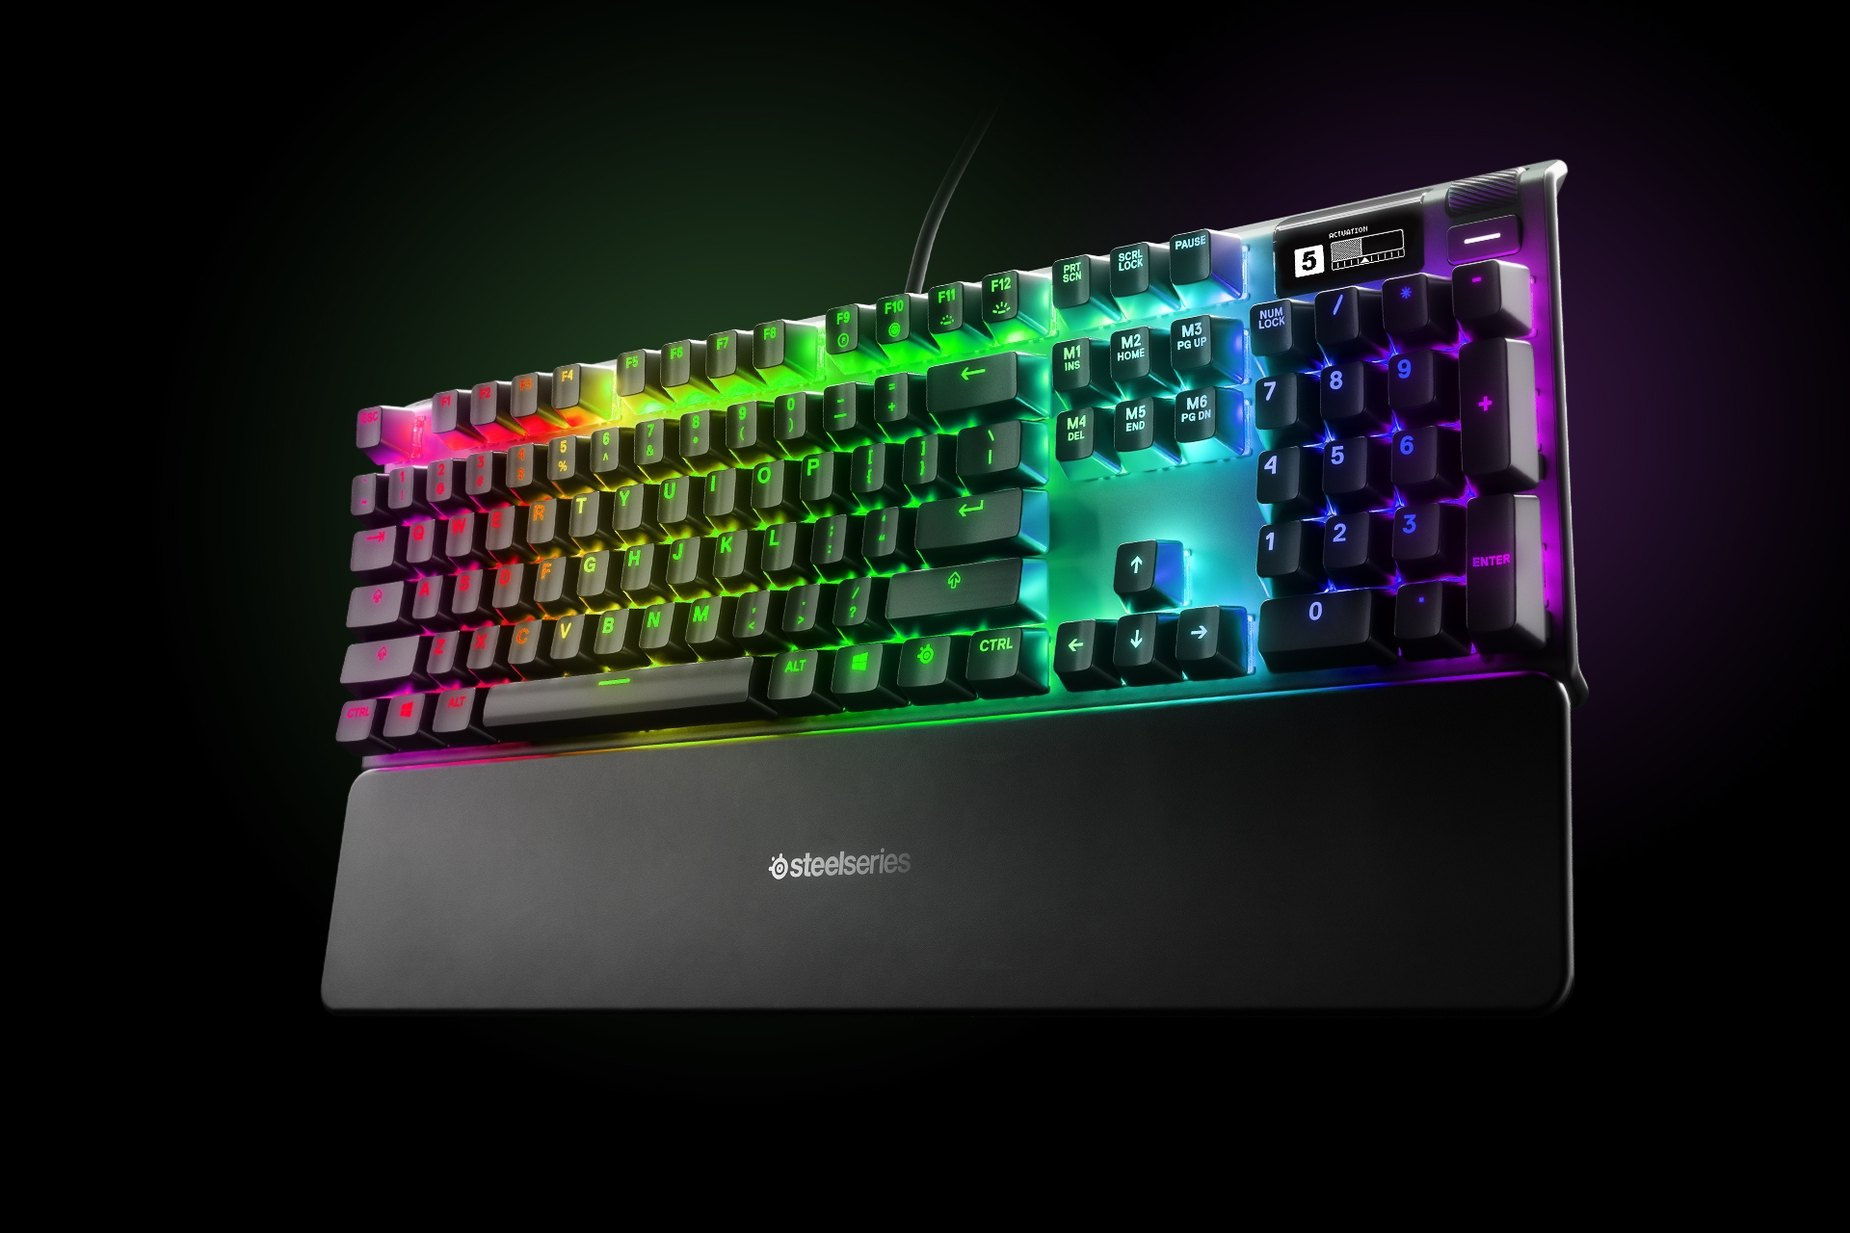 Französisch - Apex Pro gaming keyboard with the illumination lit up on dark background, also shows the OLED screen and controls used to change settings, switch actuation, and adjust audio